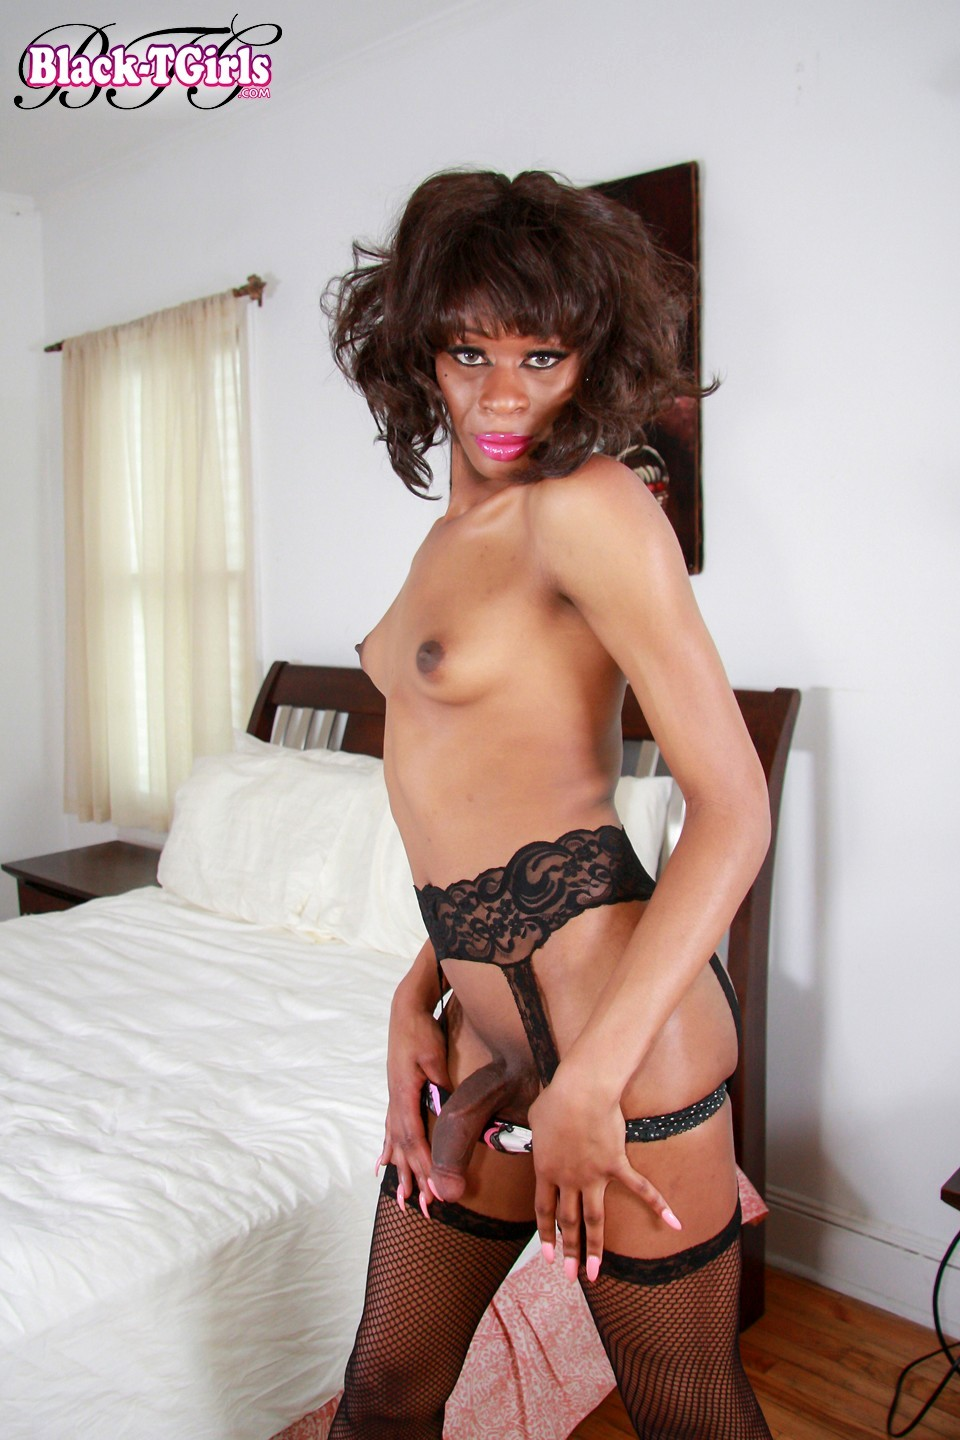 tgirl celine is feeling so starved today